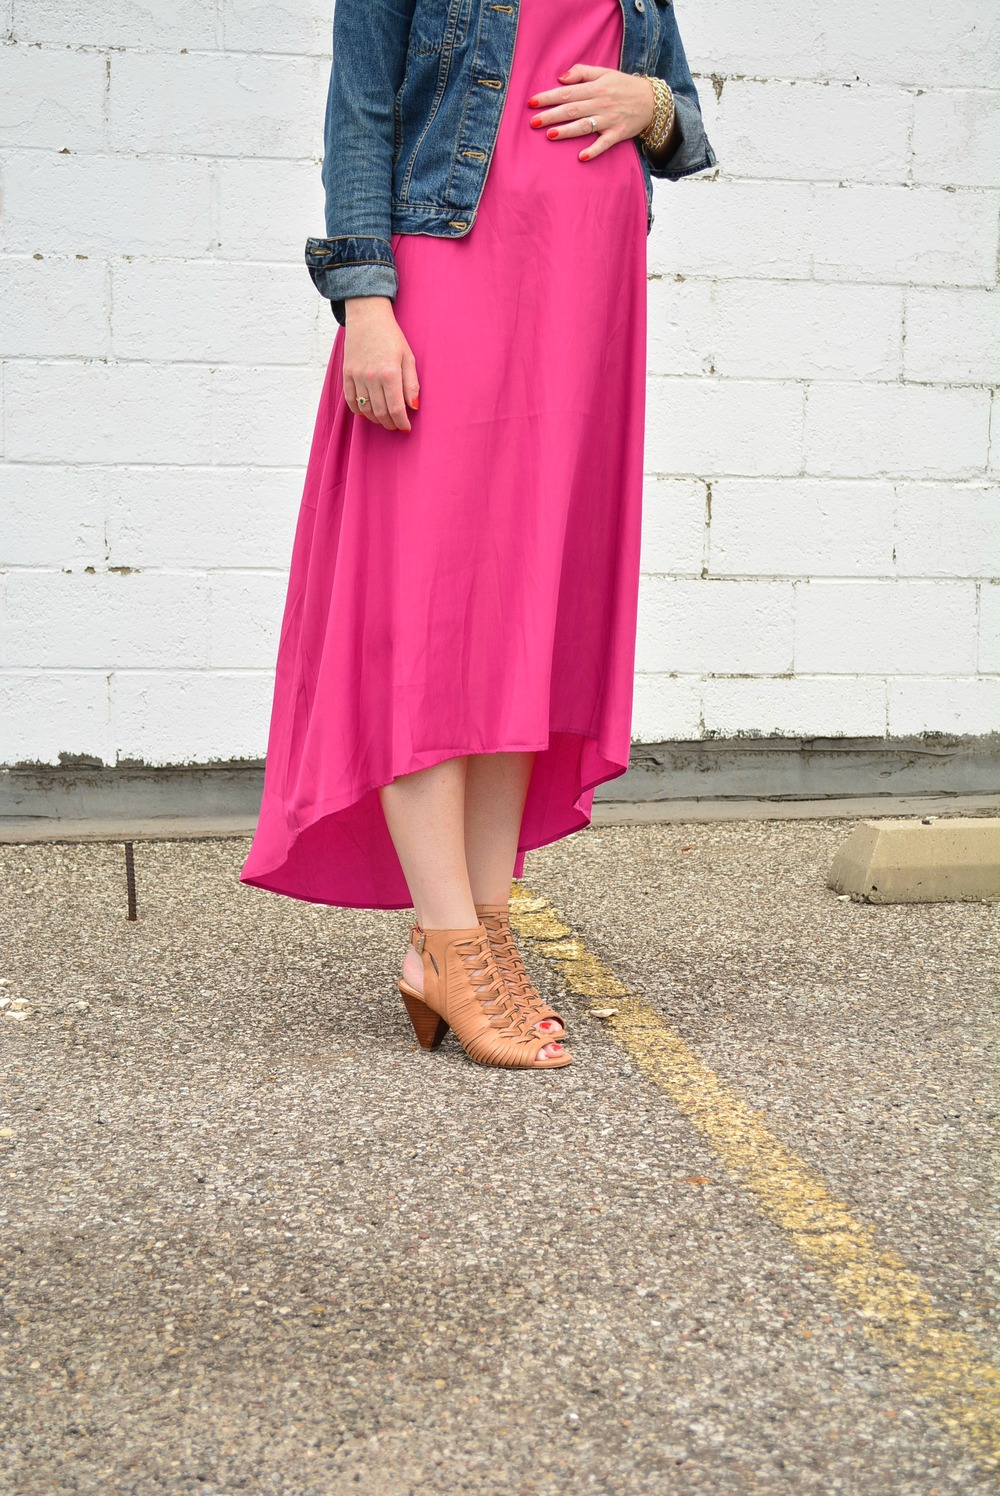 Maternity outfit of fuchsia maxi dress with denim jacket